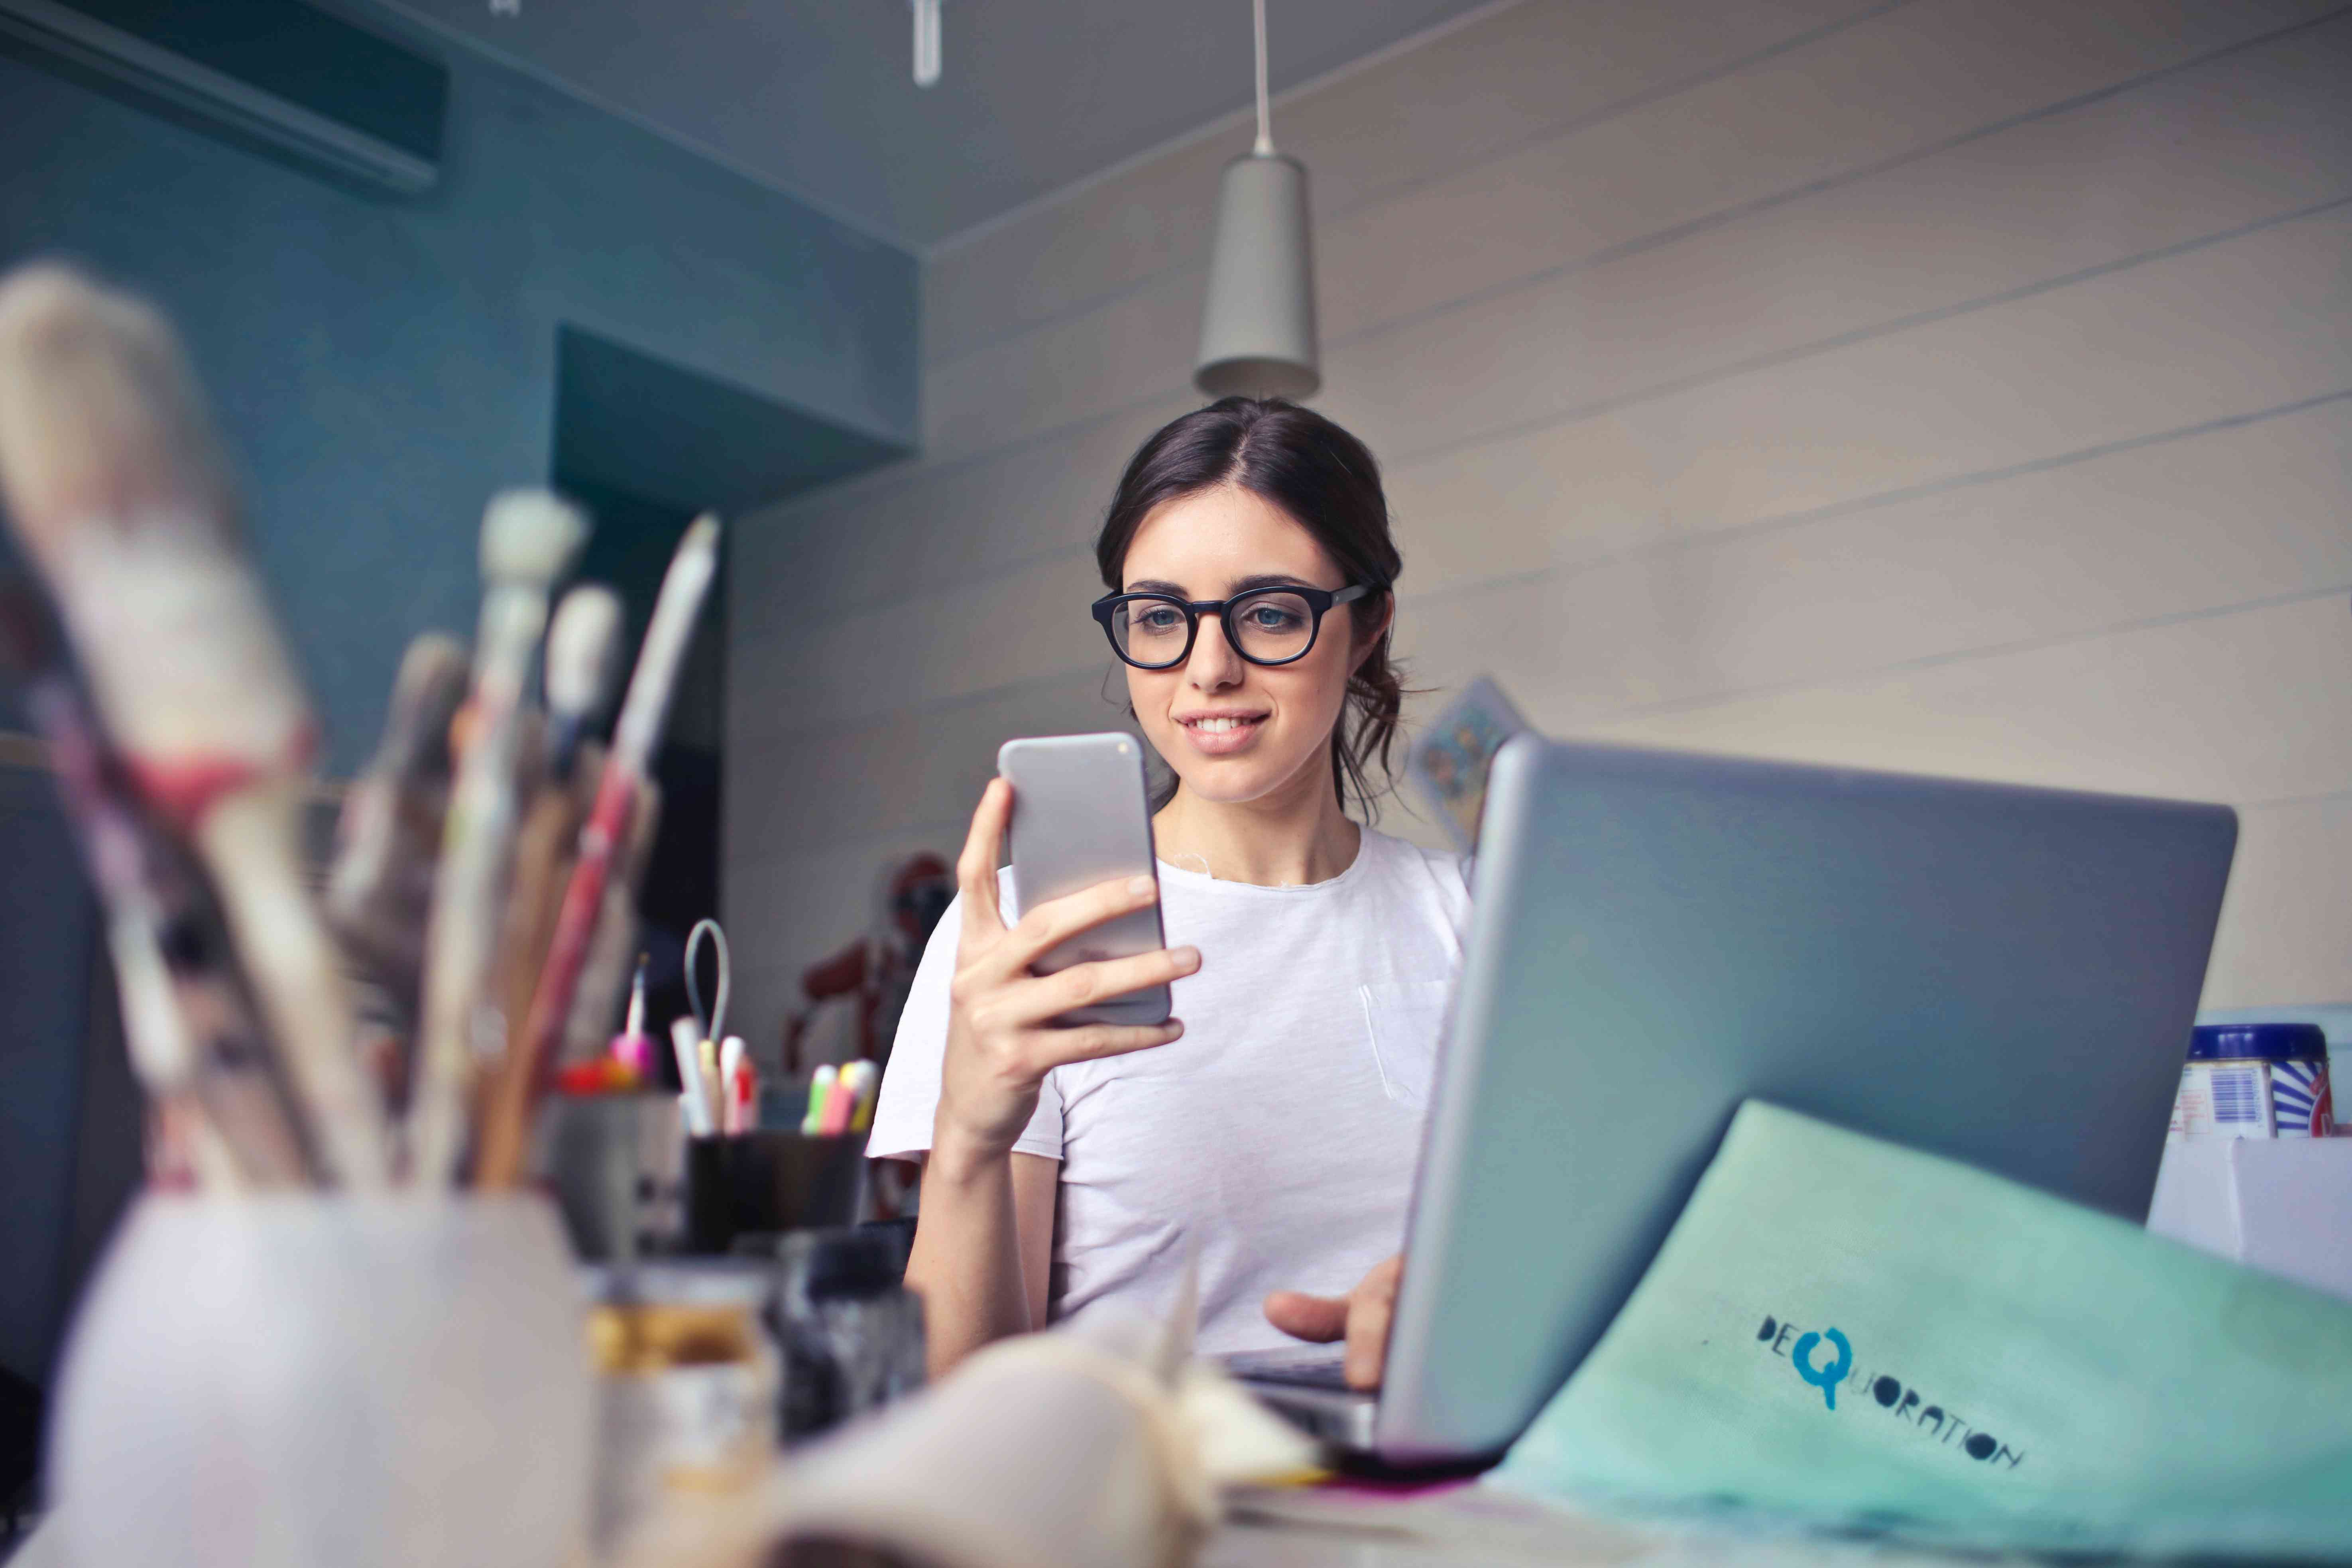 Woman with glasses looking at phone